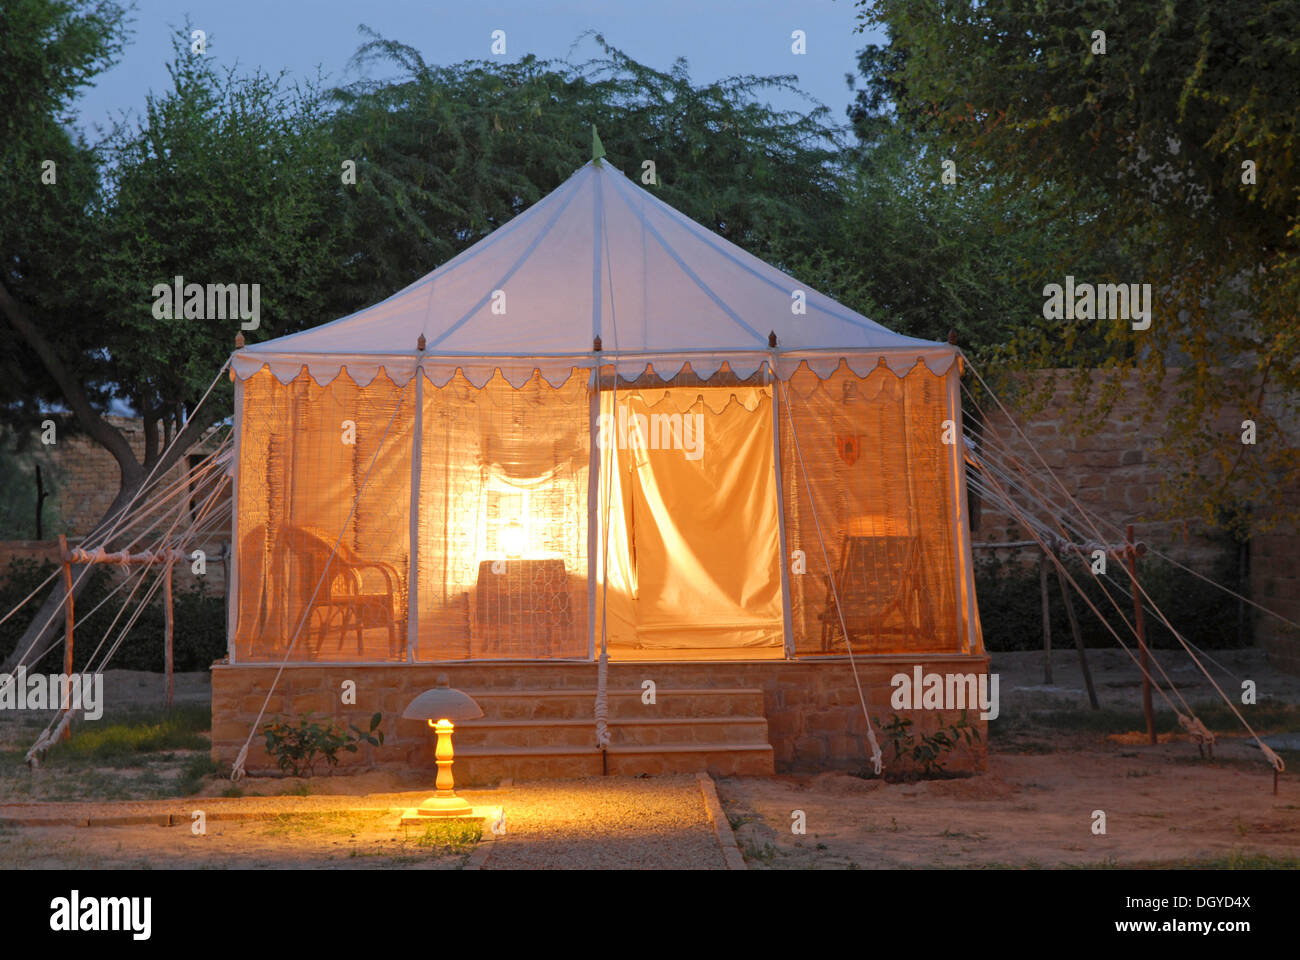 Tent illuminated from the inside Royal Jodhpur C& in Mool Sagar heritage hotel and pleasure gardens of the Maharajas of & Tent illuminated from the inside Royal Jodhpur Camp in Mool ...